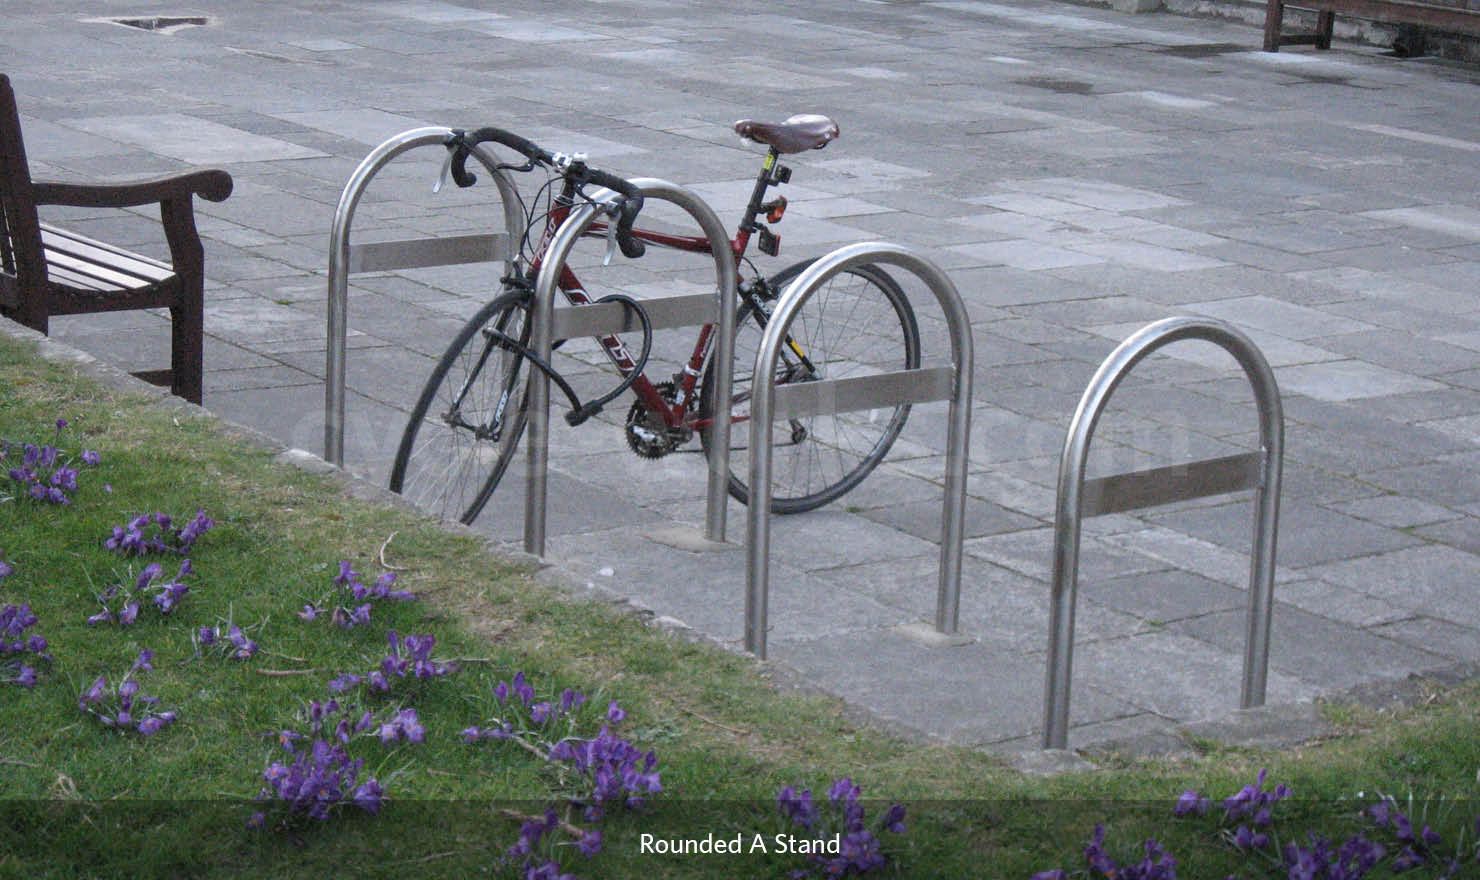 Rounded A Cycle Stand